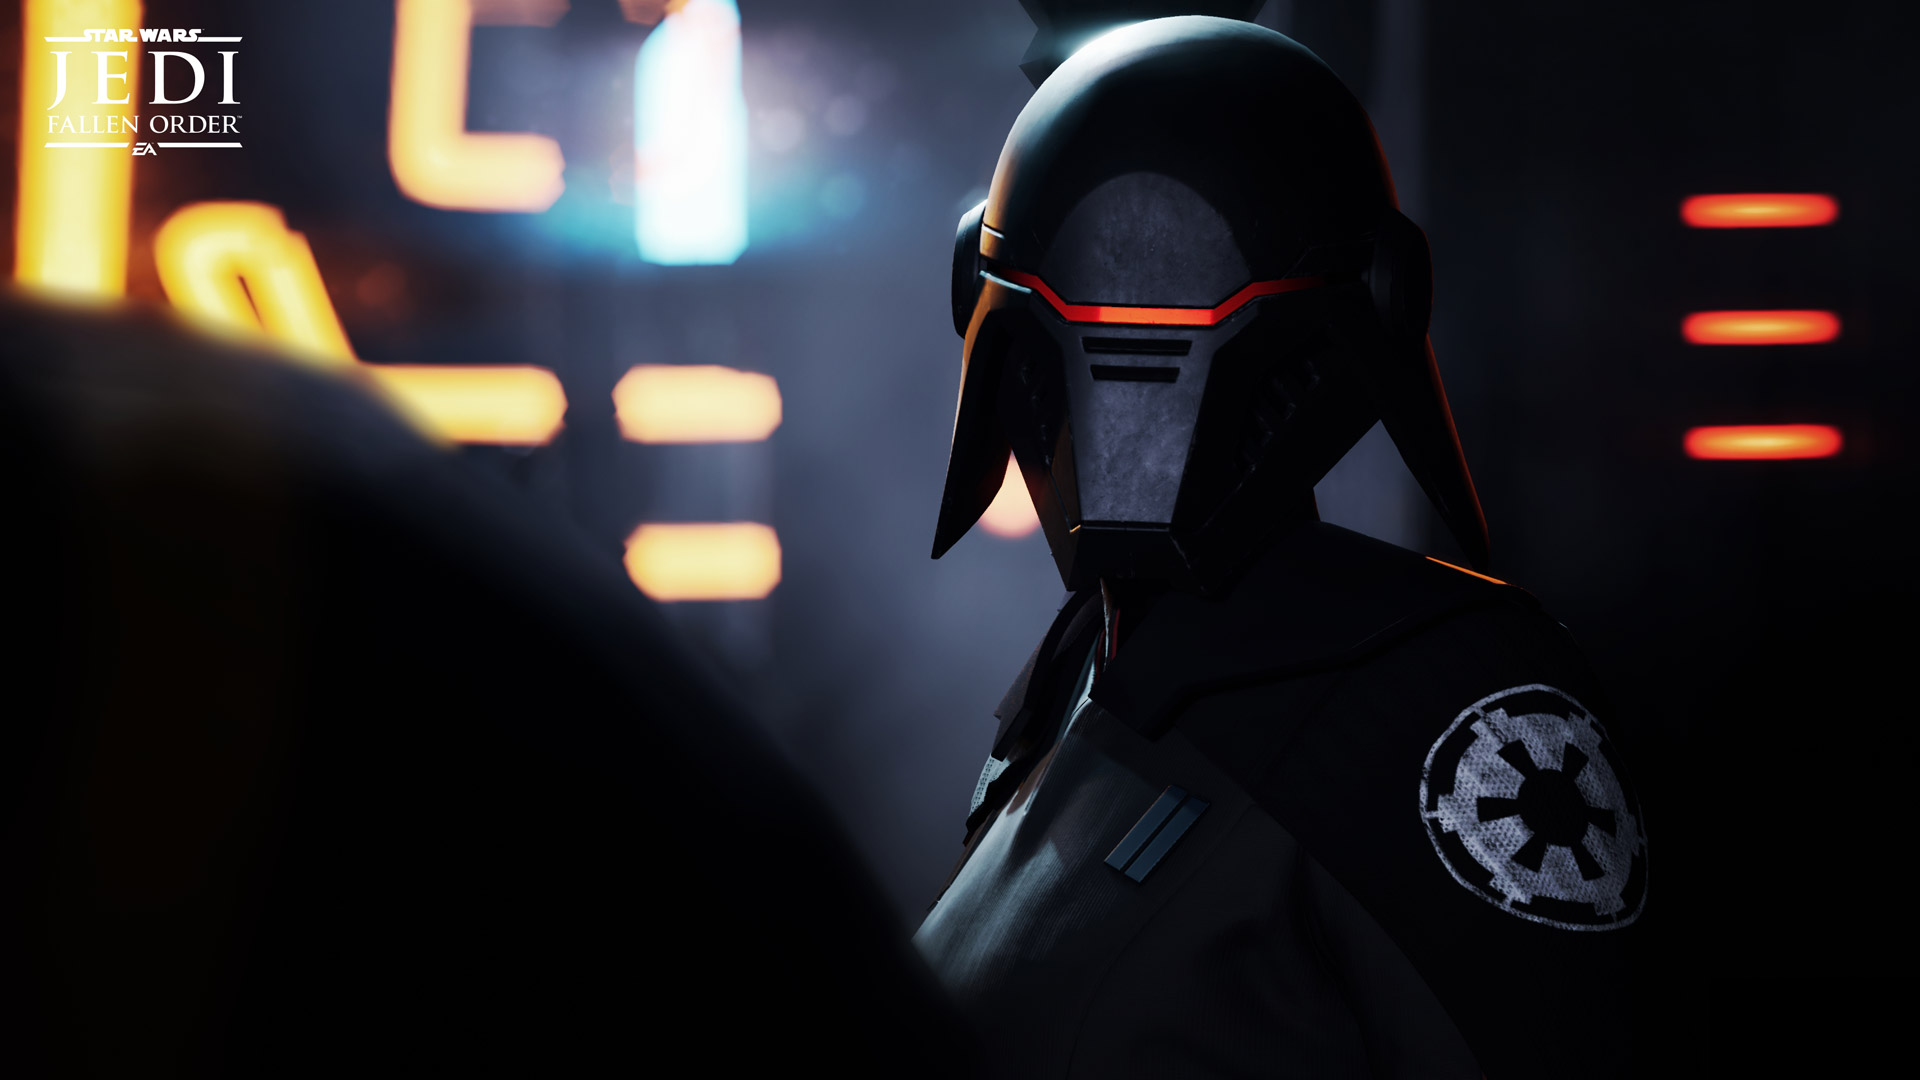 Star Wars Jedi Fallen Order Wallpaper In 1920x1080